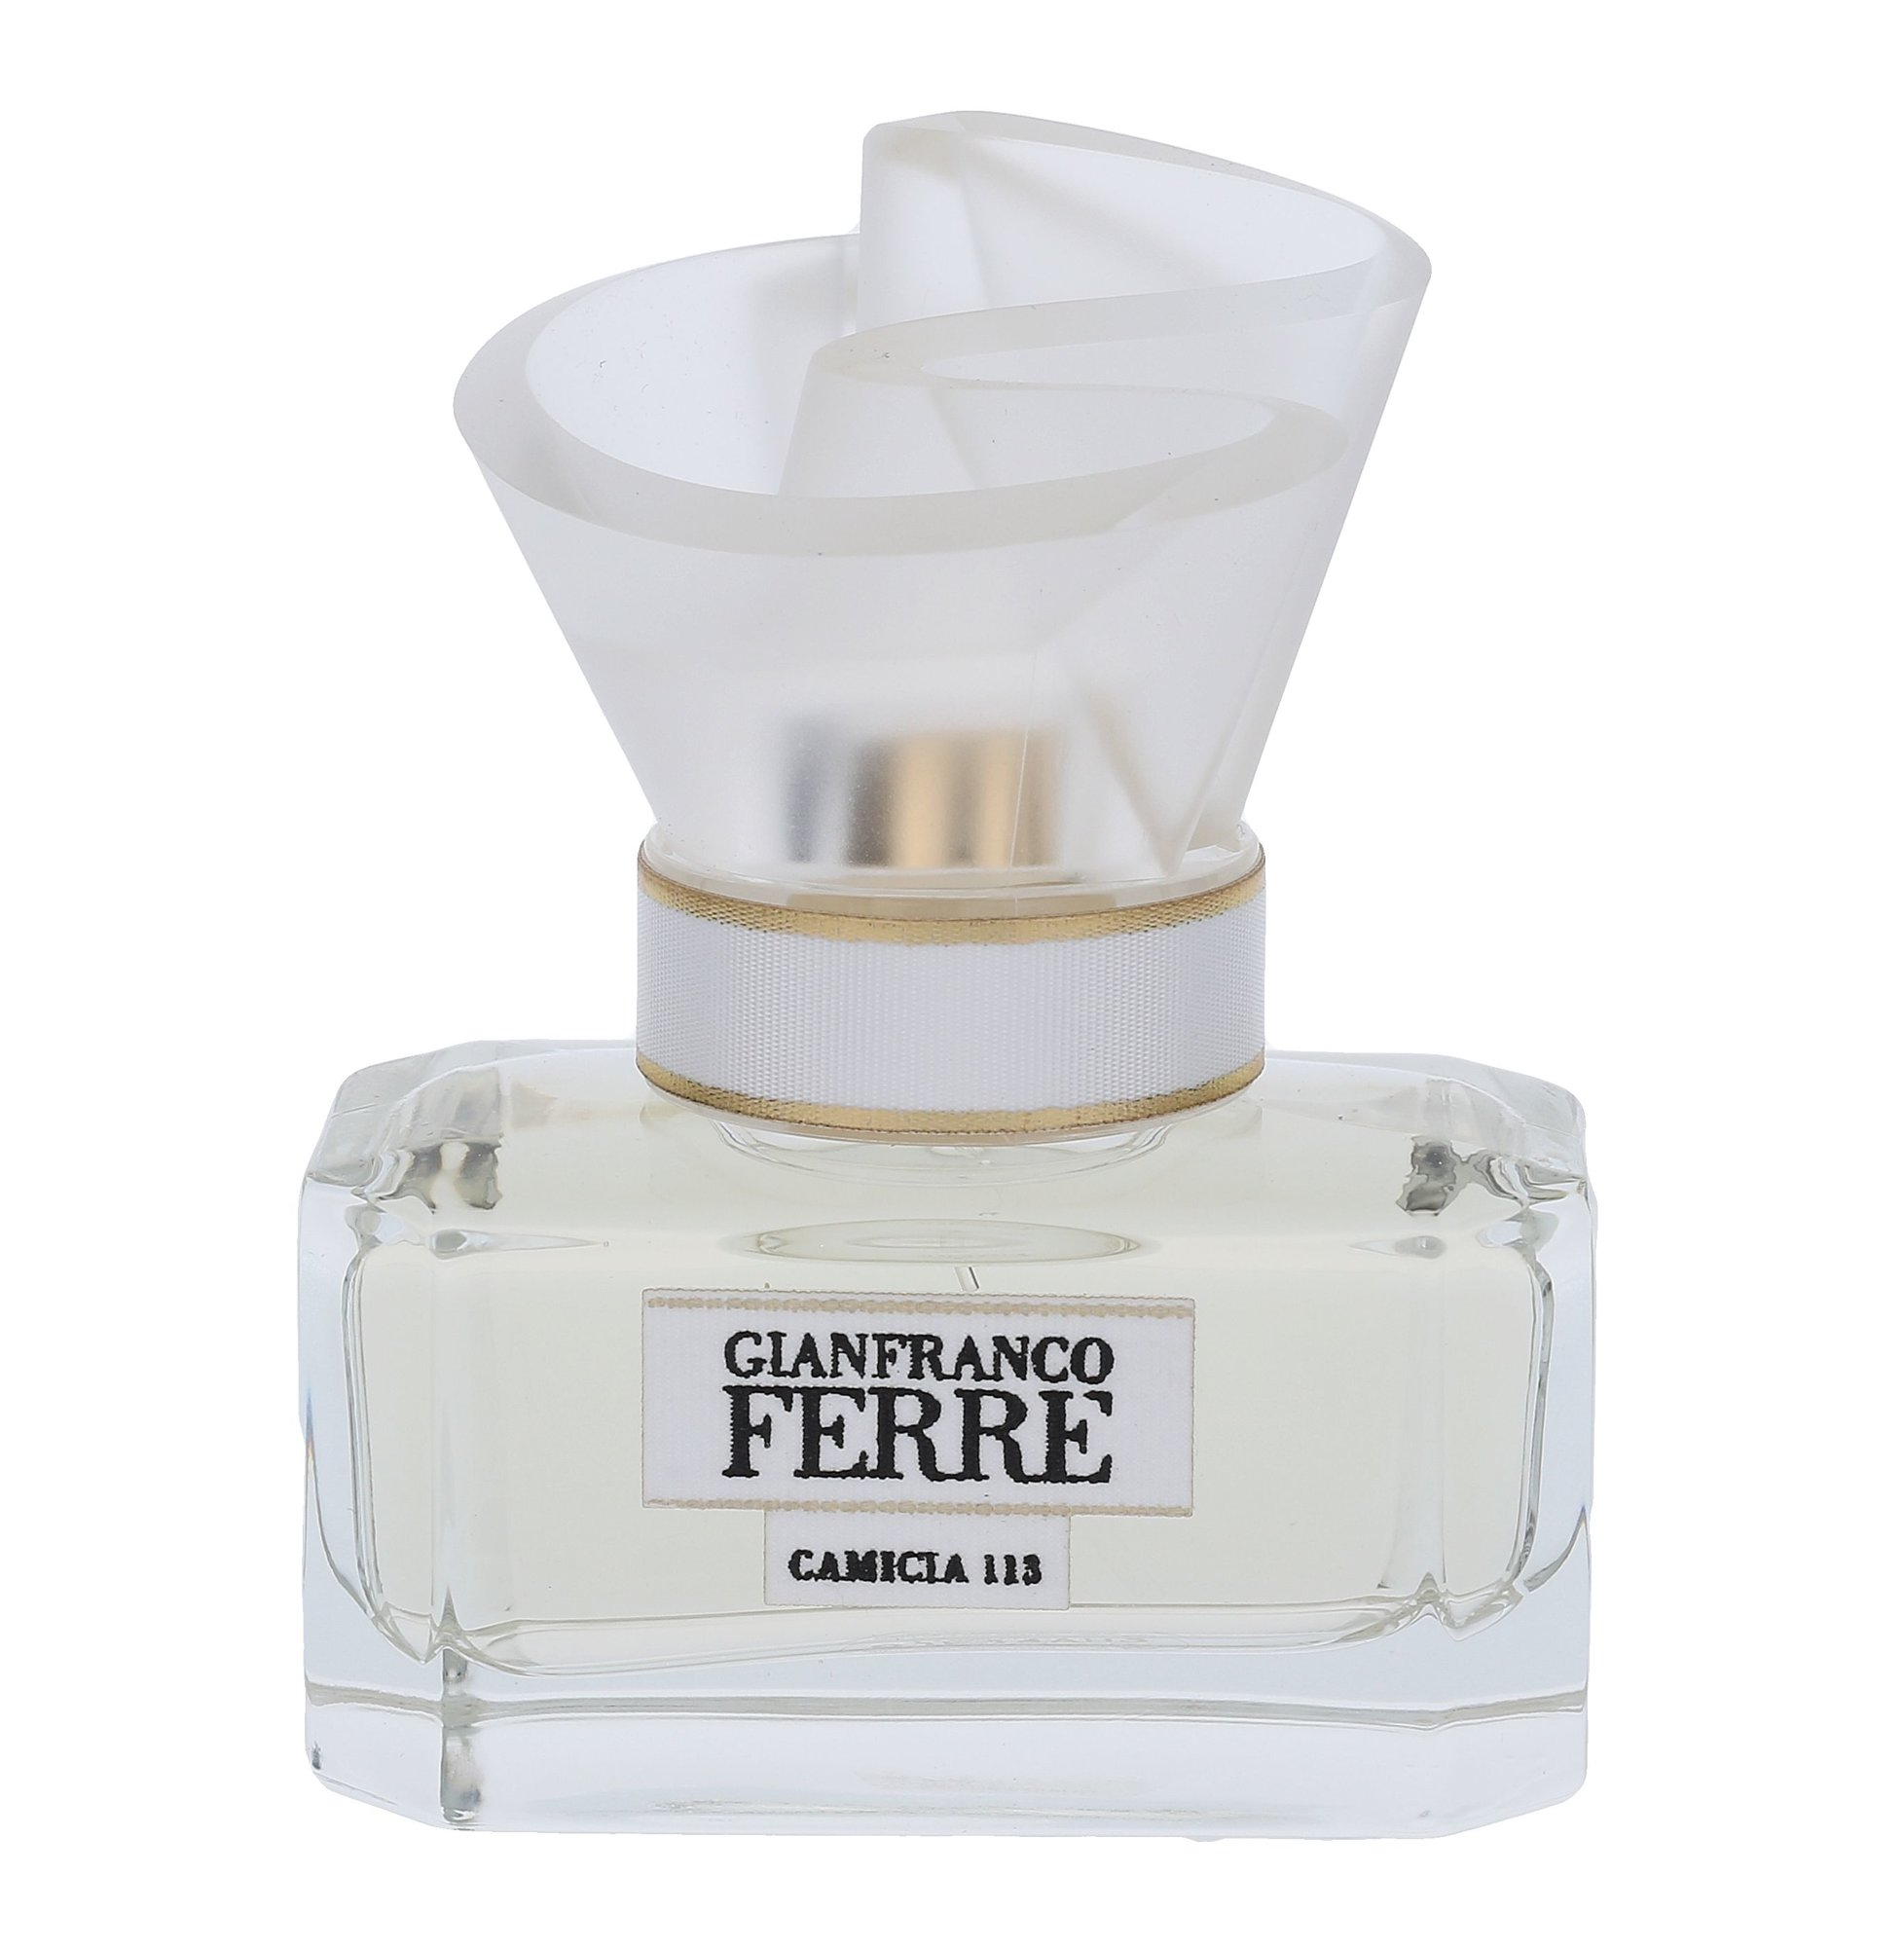 Gianfranco Ferre Camicia 113 EDP 30ml